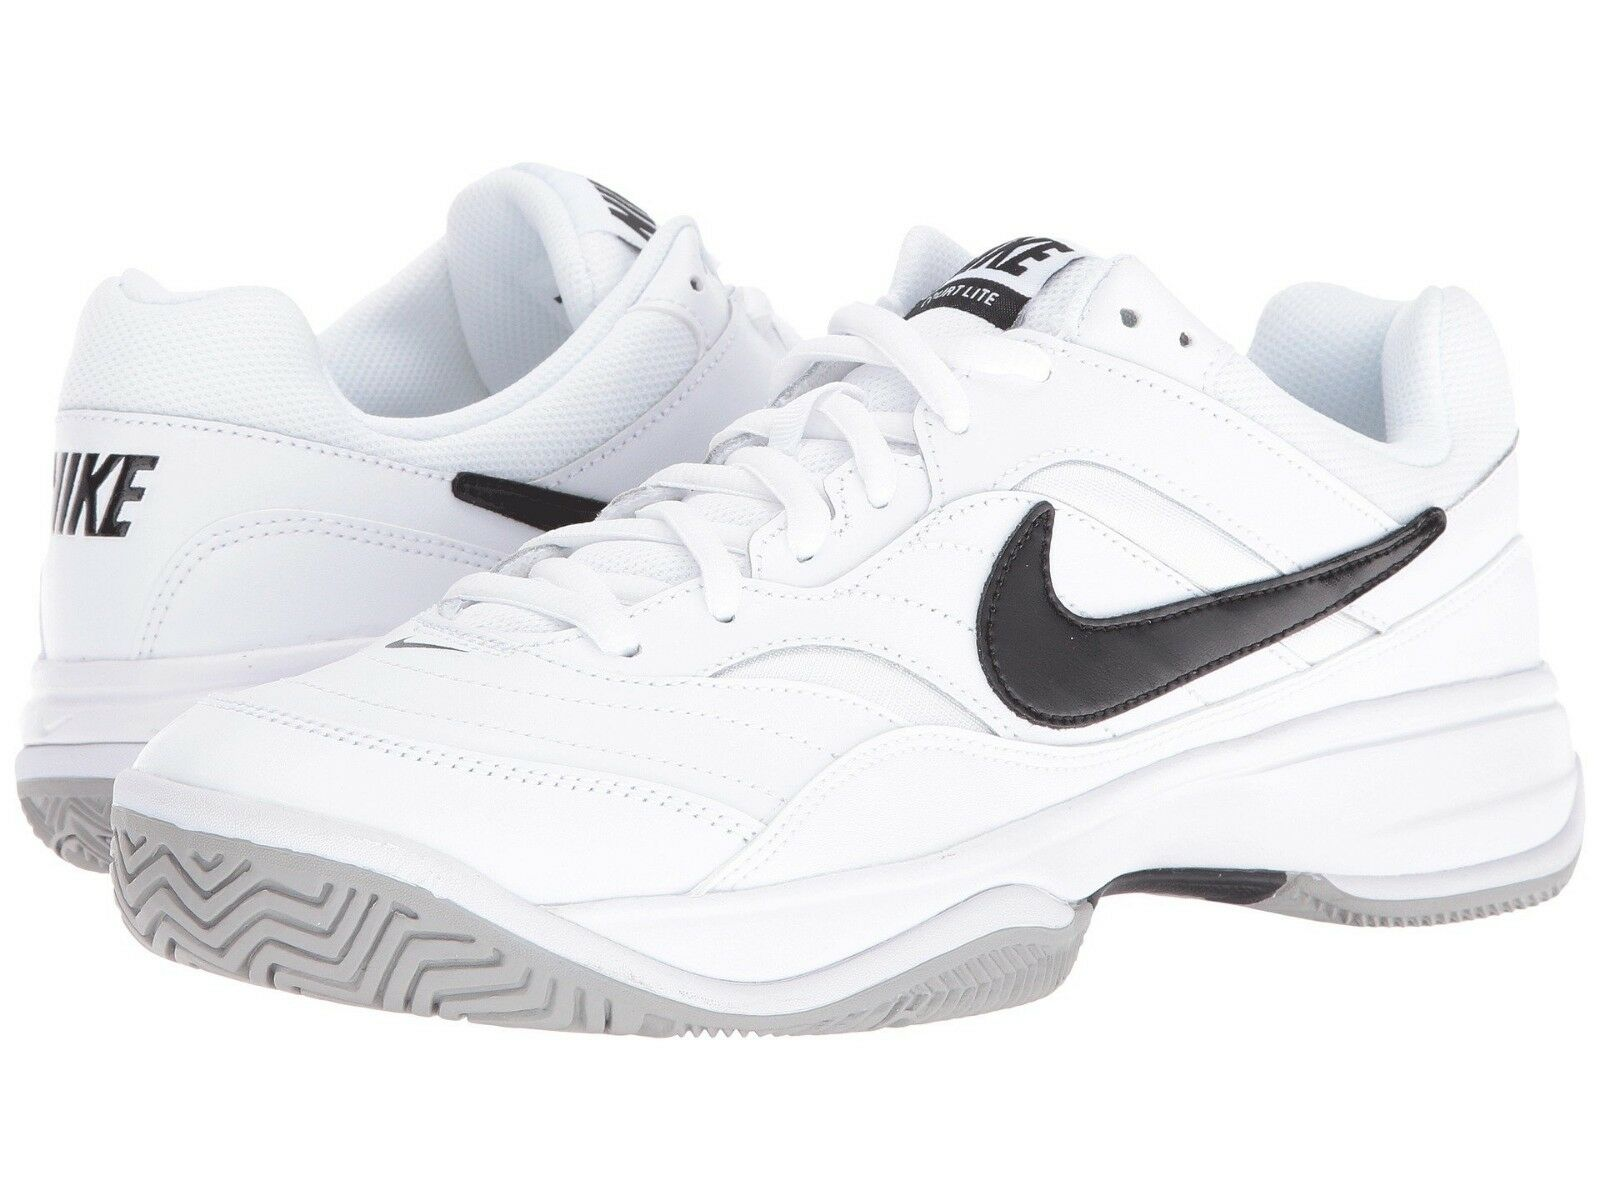 Nike Court Lite blanc  Noir Hommes Tennis Chaussures Sneakers Trainers 8 - 14